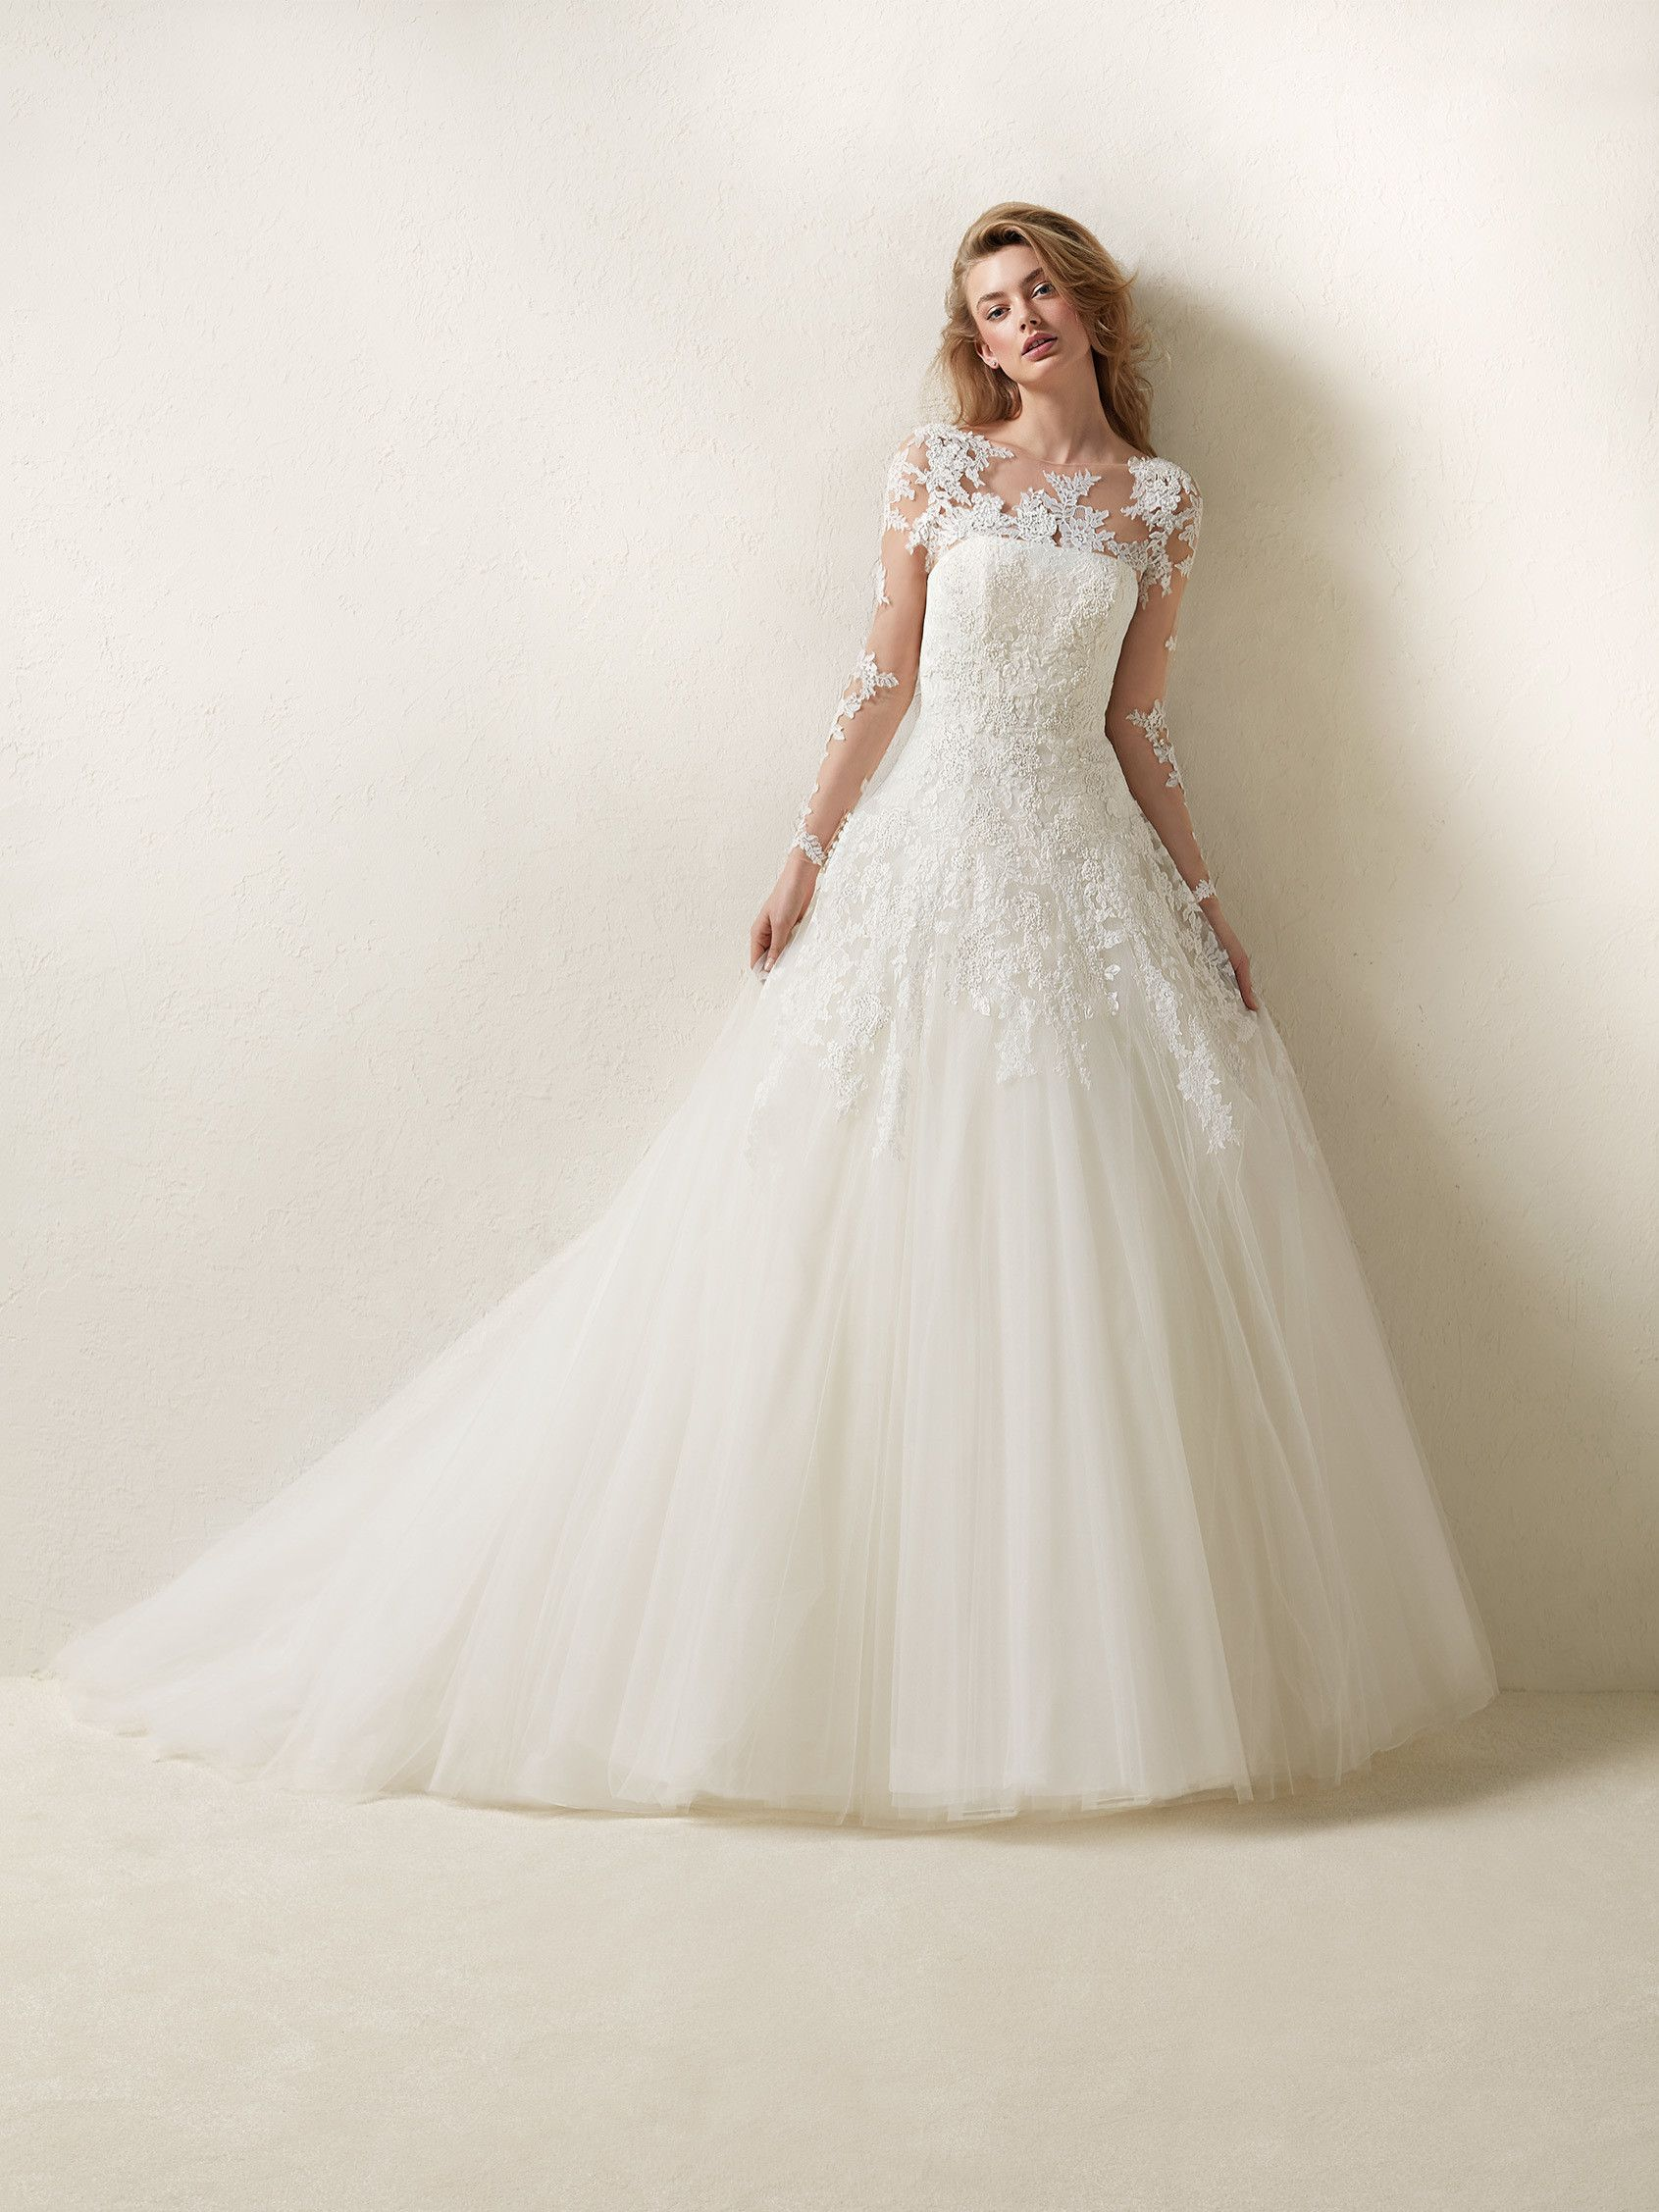 Wedding dress shops london princess wedding dresses wedding wedding dress shops london ombrellifo Image collections